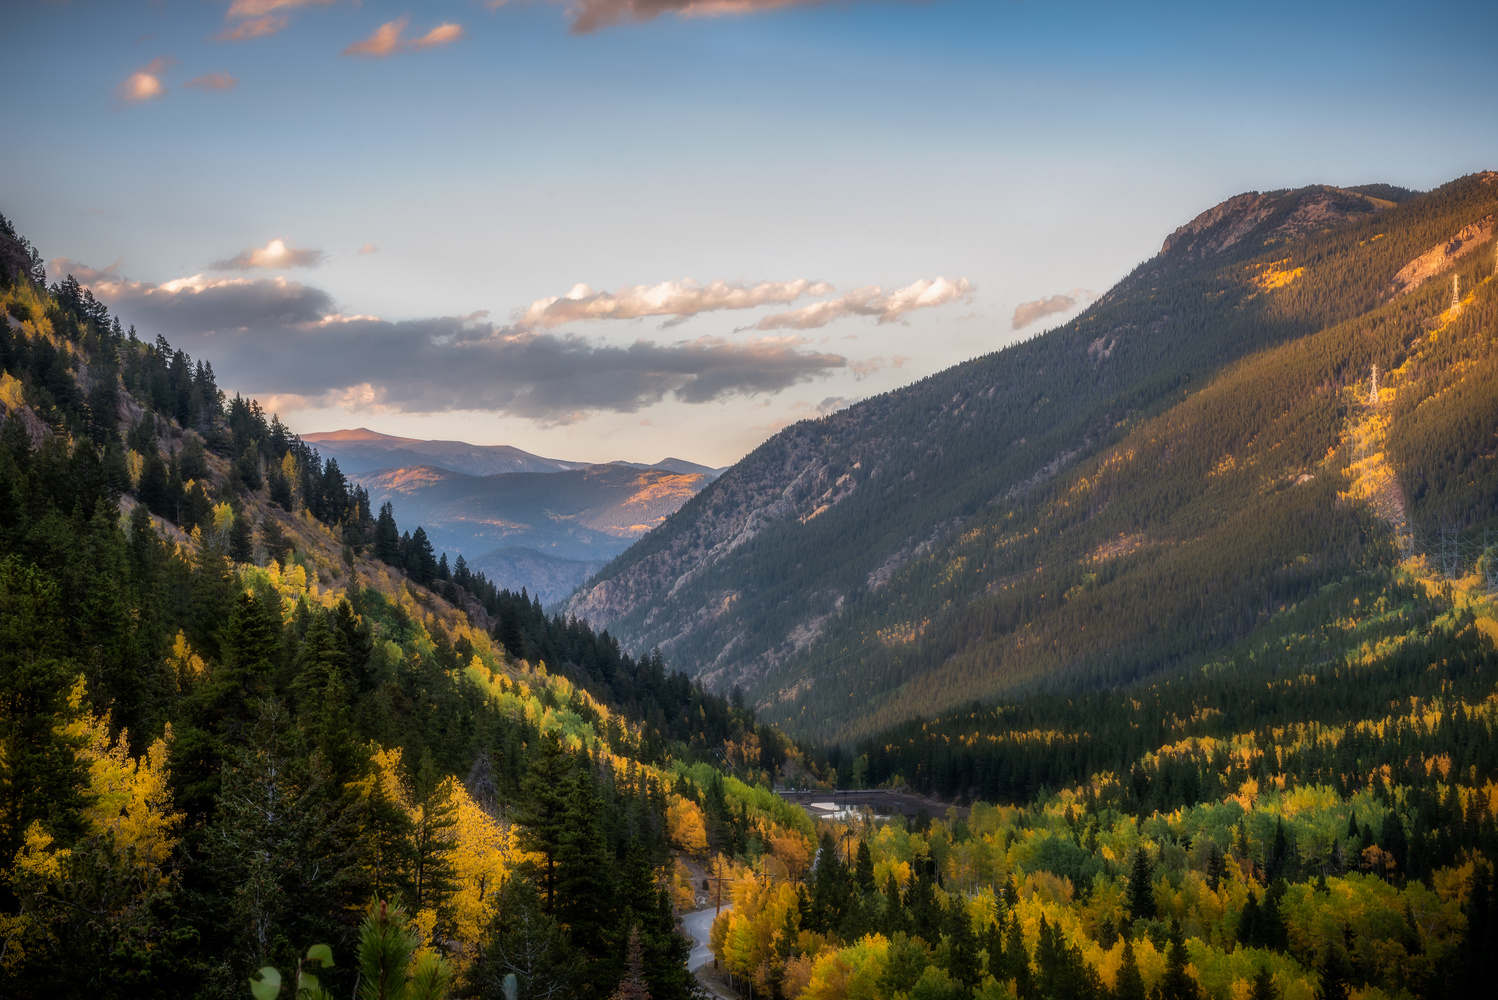 Last light of the day by Korey Shumway